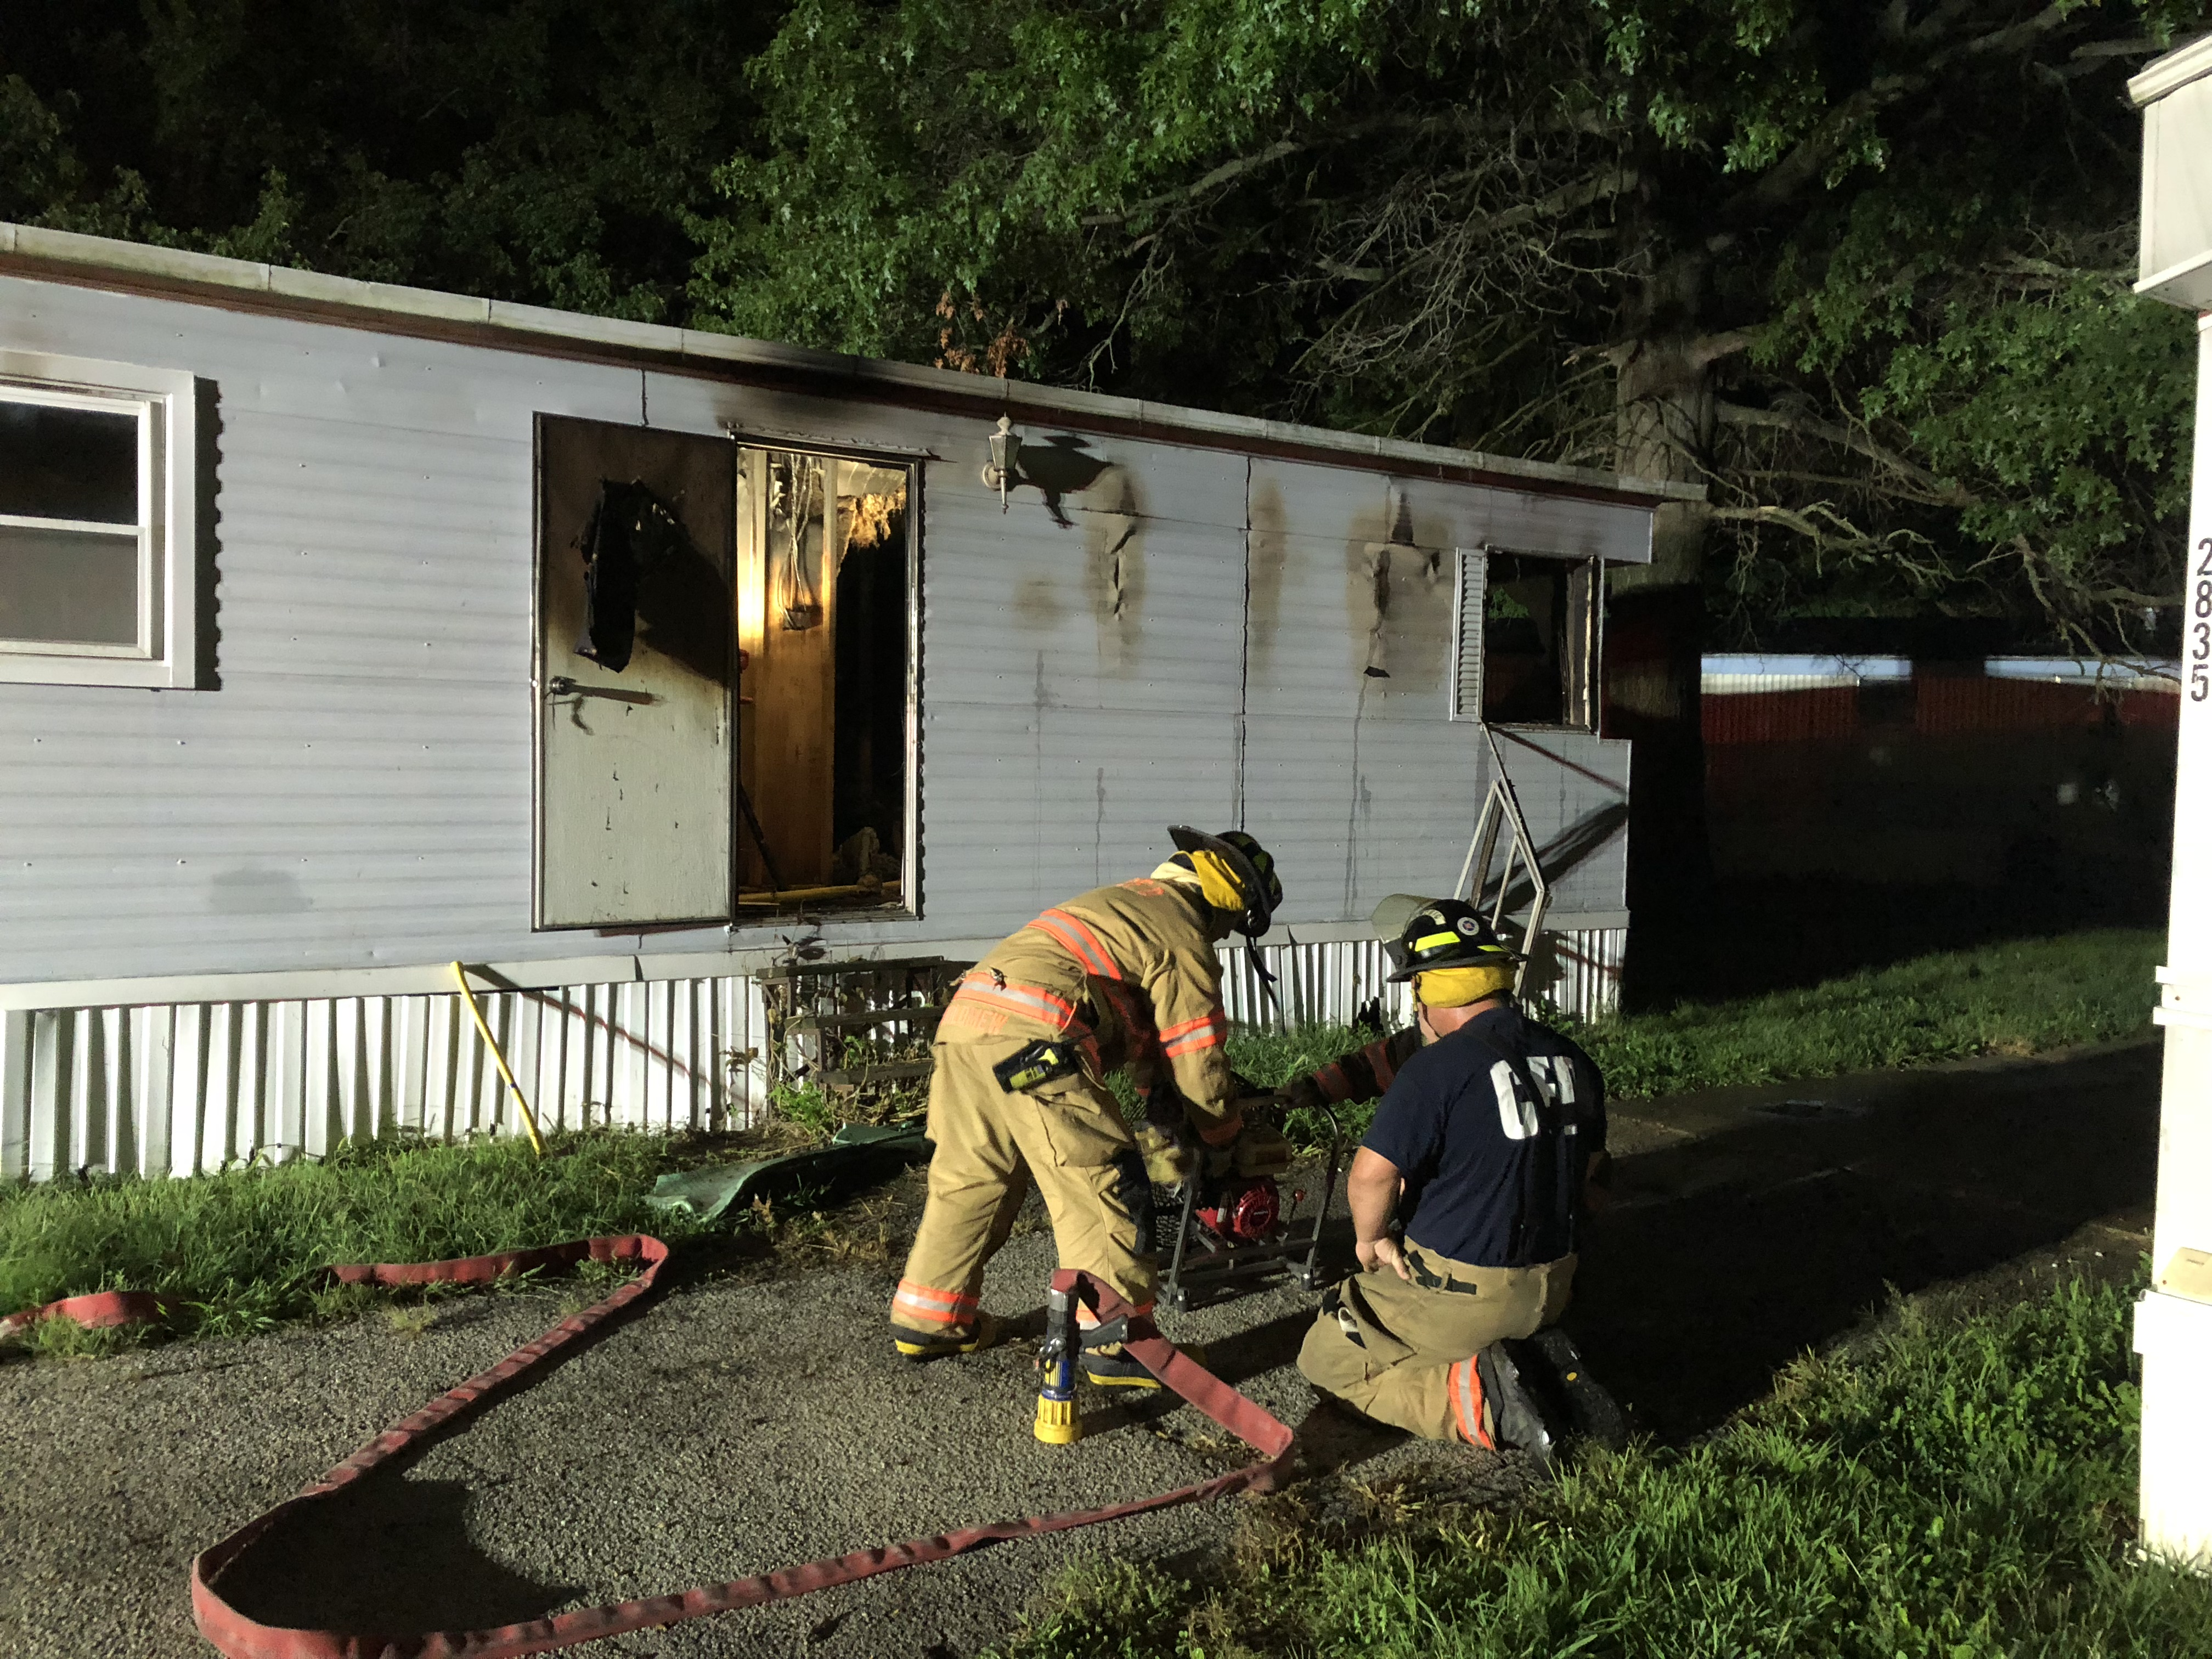 Mobile home fire threatens neighbors in Candlelight Village